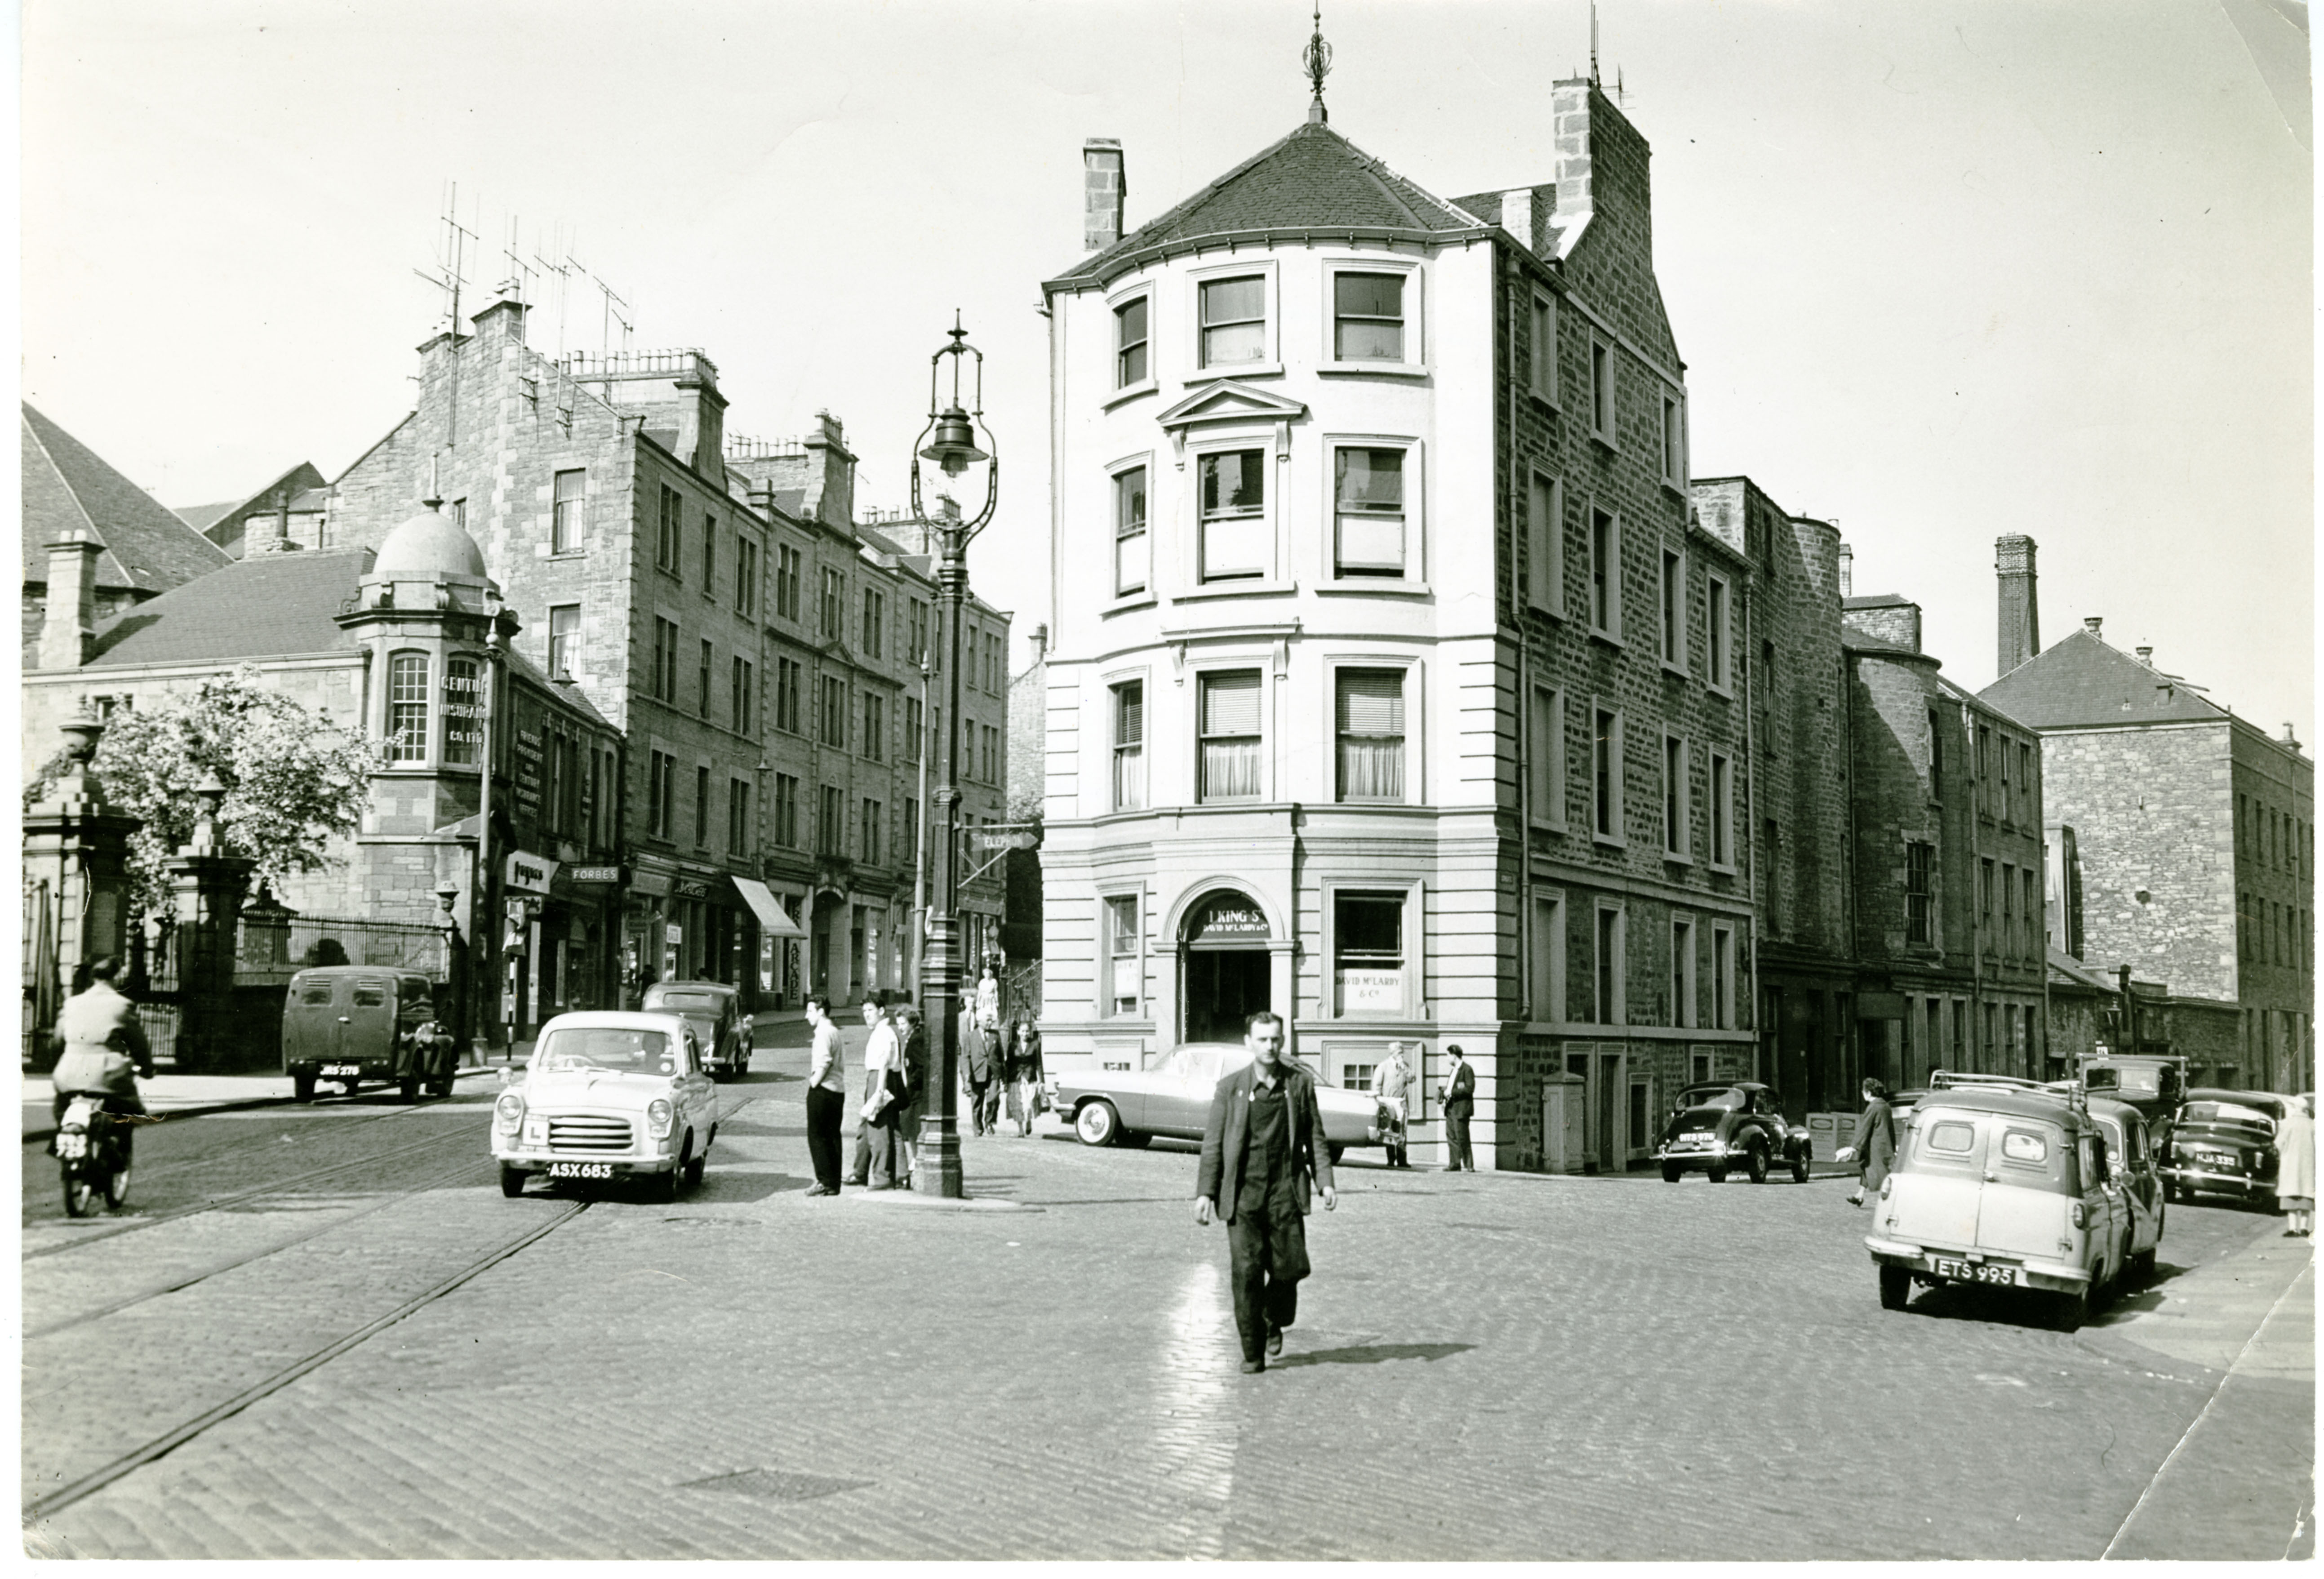 The view of King Street and Cowgate, taken from 1960